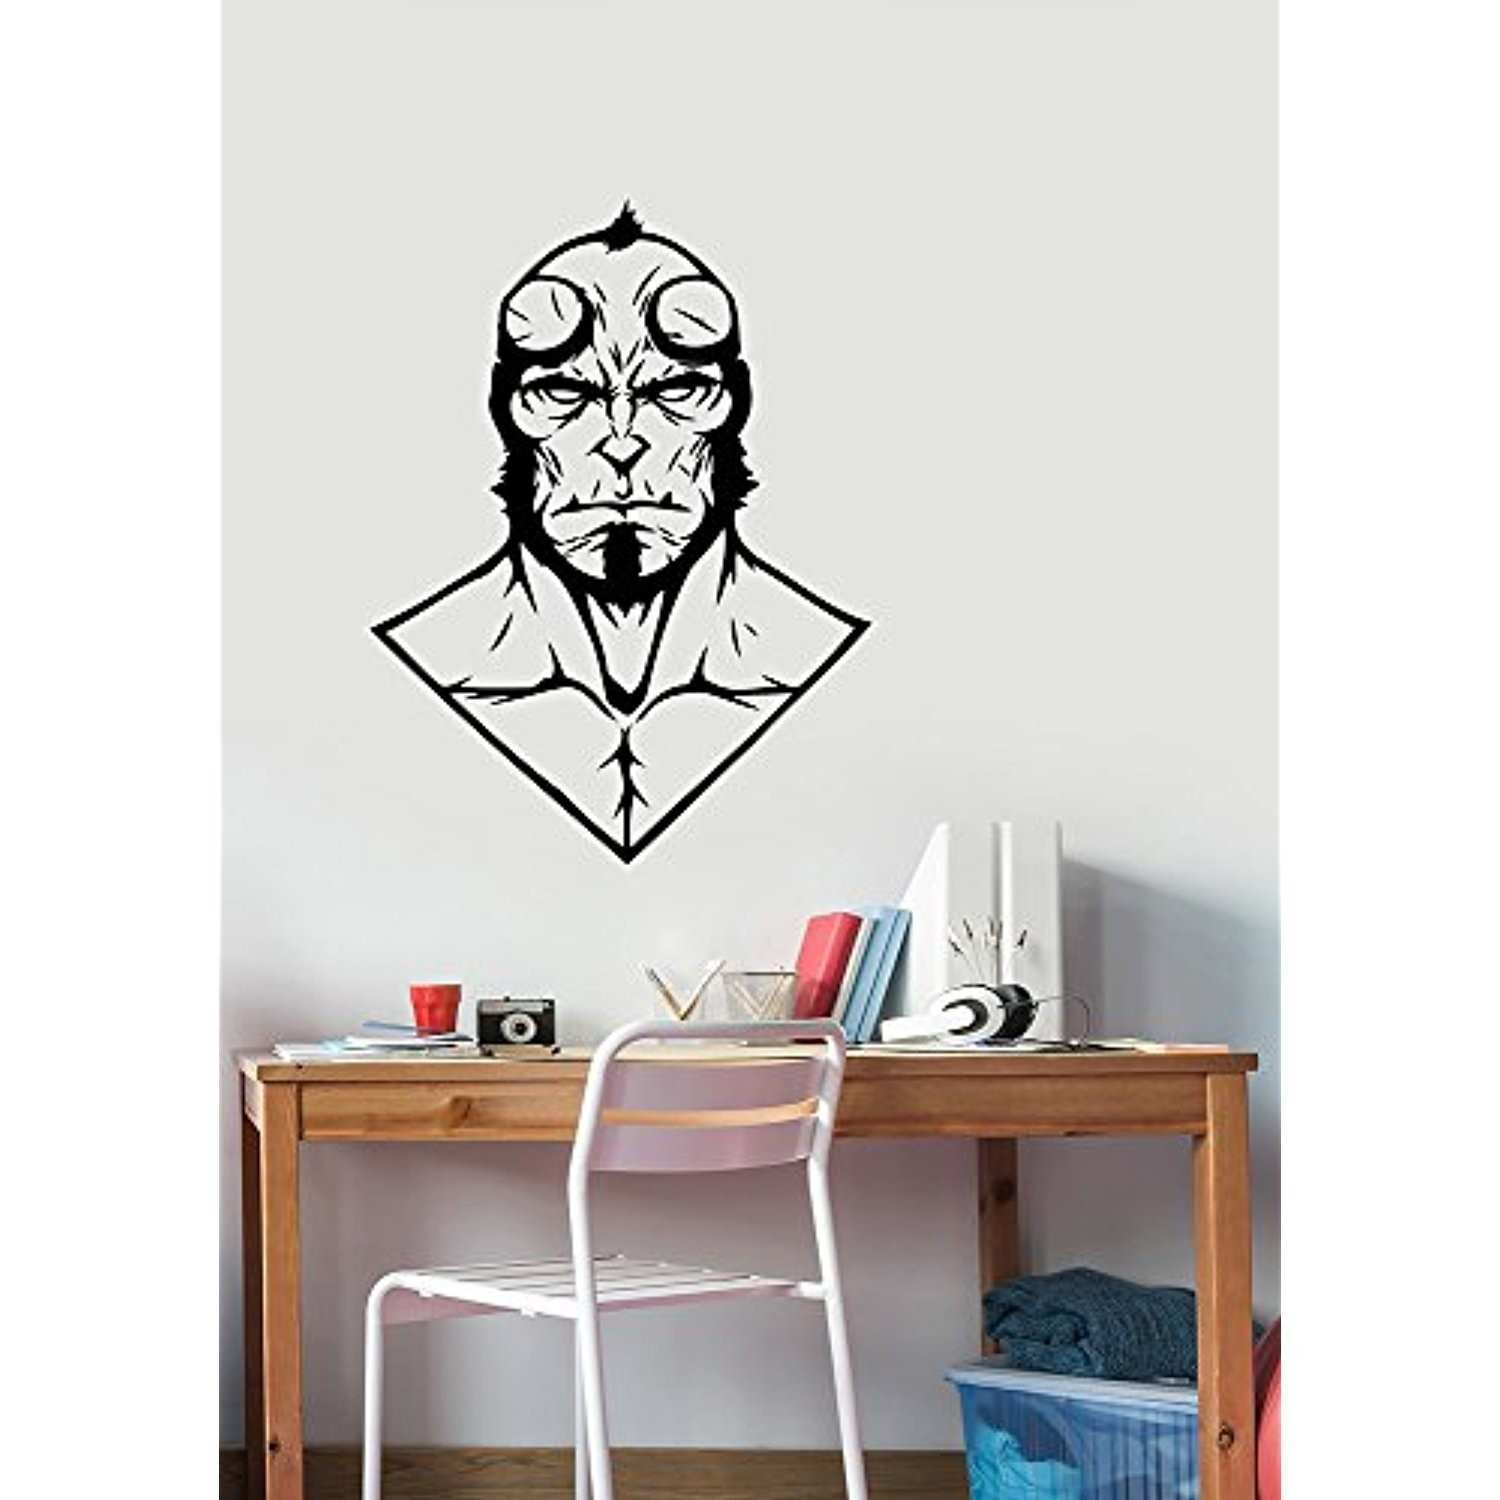 O h i o Wall Decal Luxury Wall Decals for Bedroom Unique 1 Kirkland